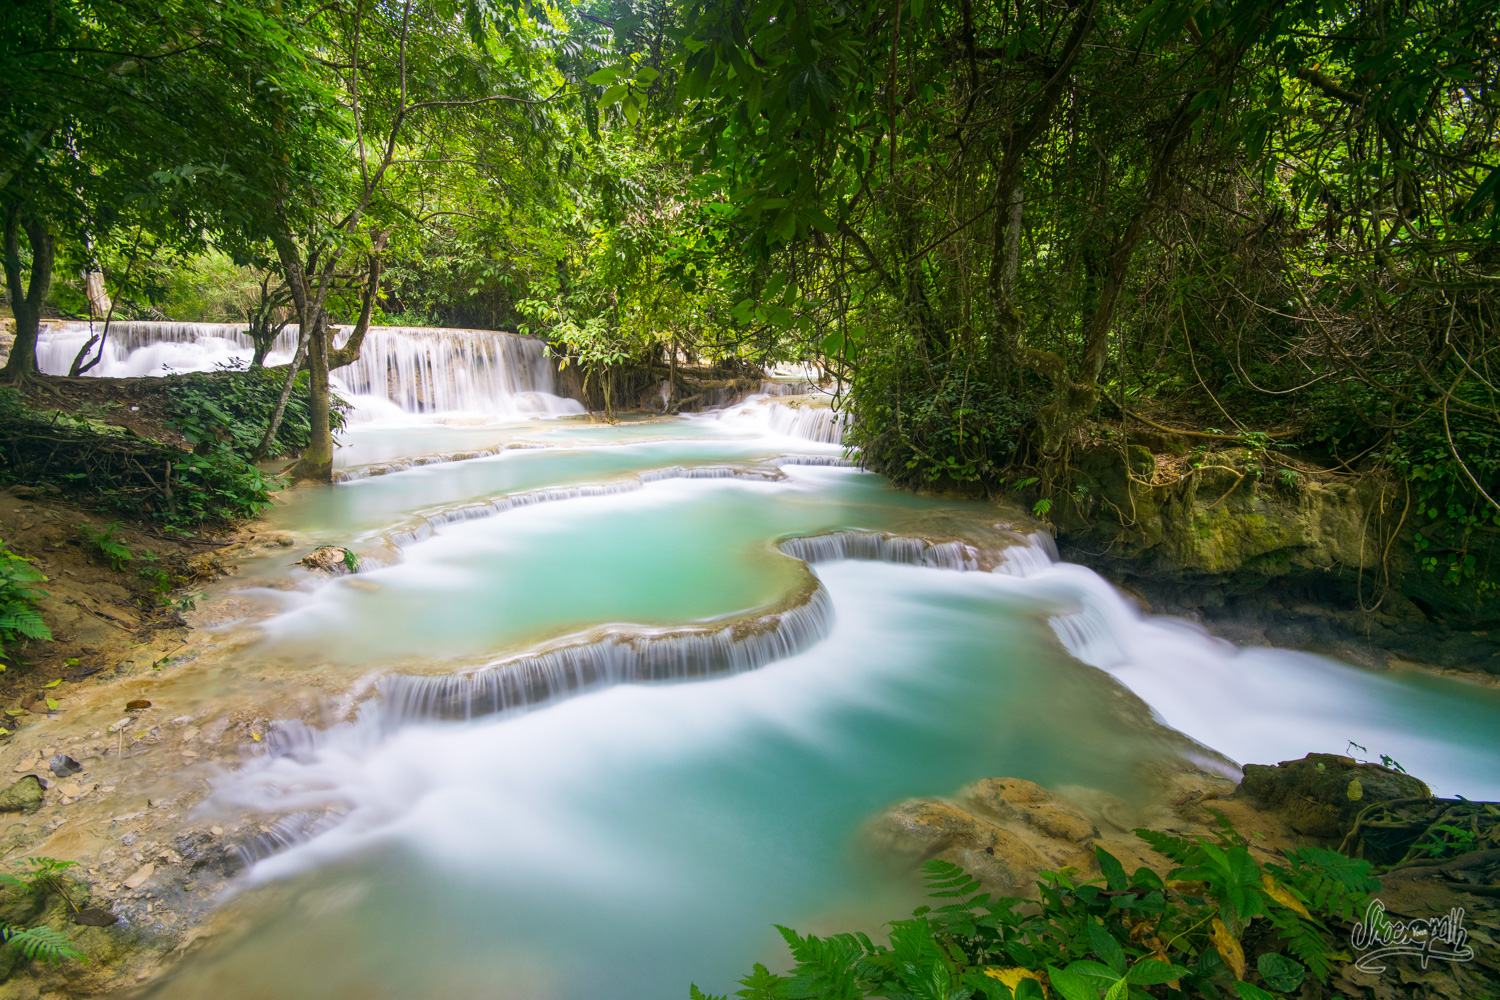 One of the little waterfalls along the river in Kuang Si